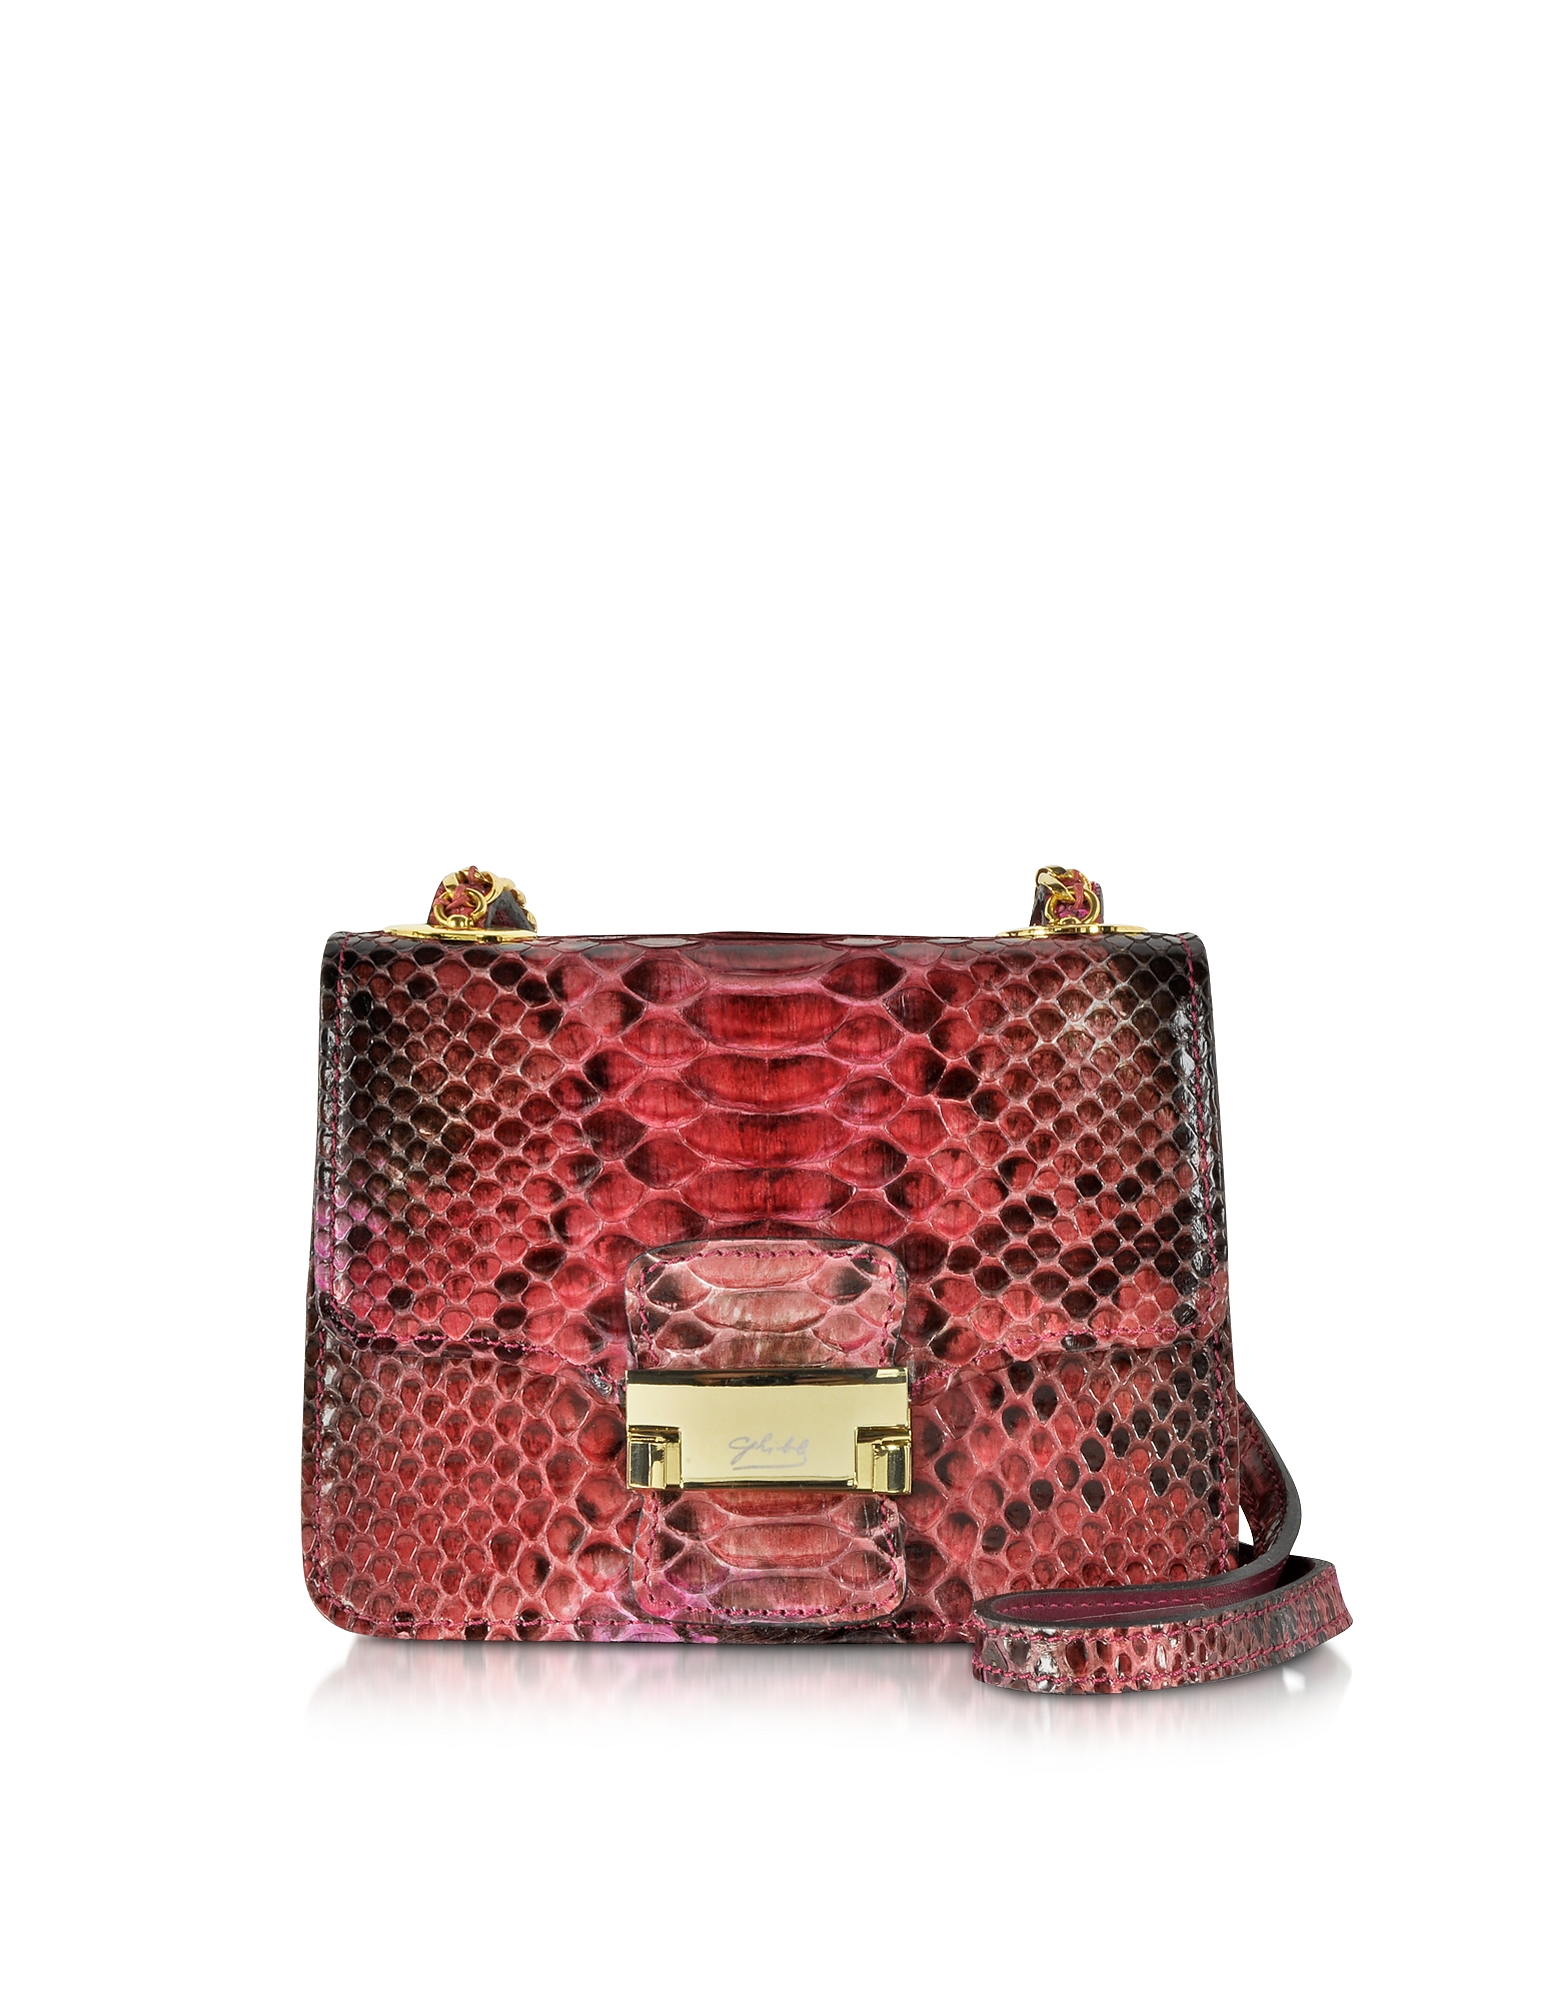 Ghibli Handbags, Python Mini Crossbody Bag